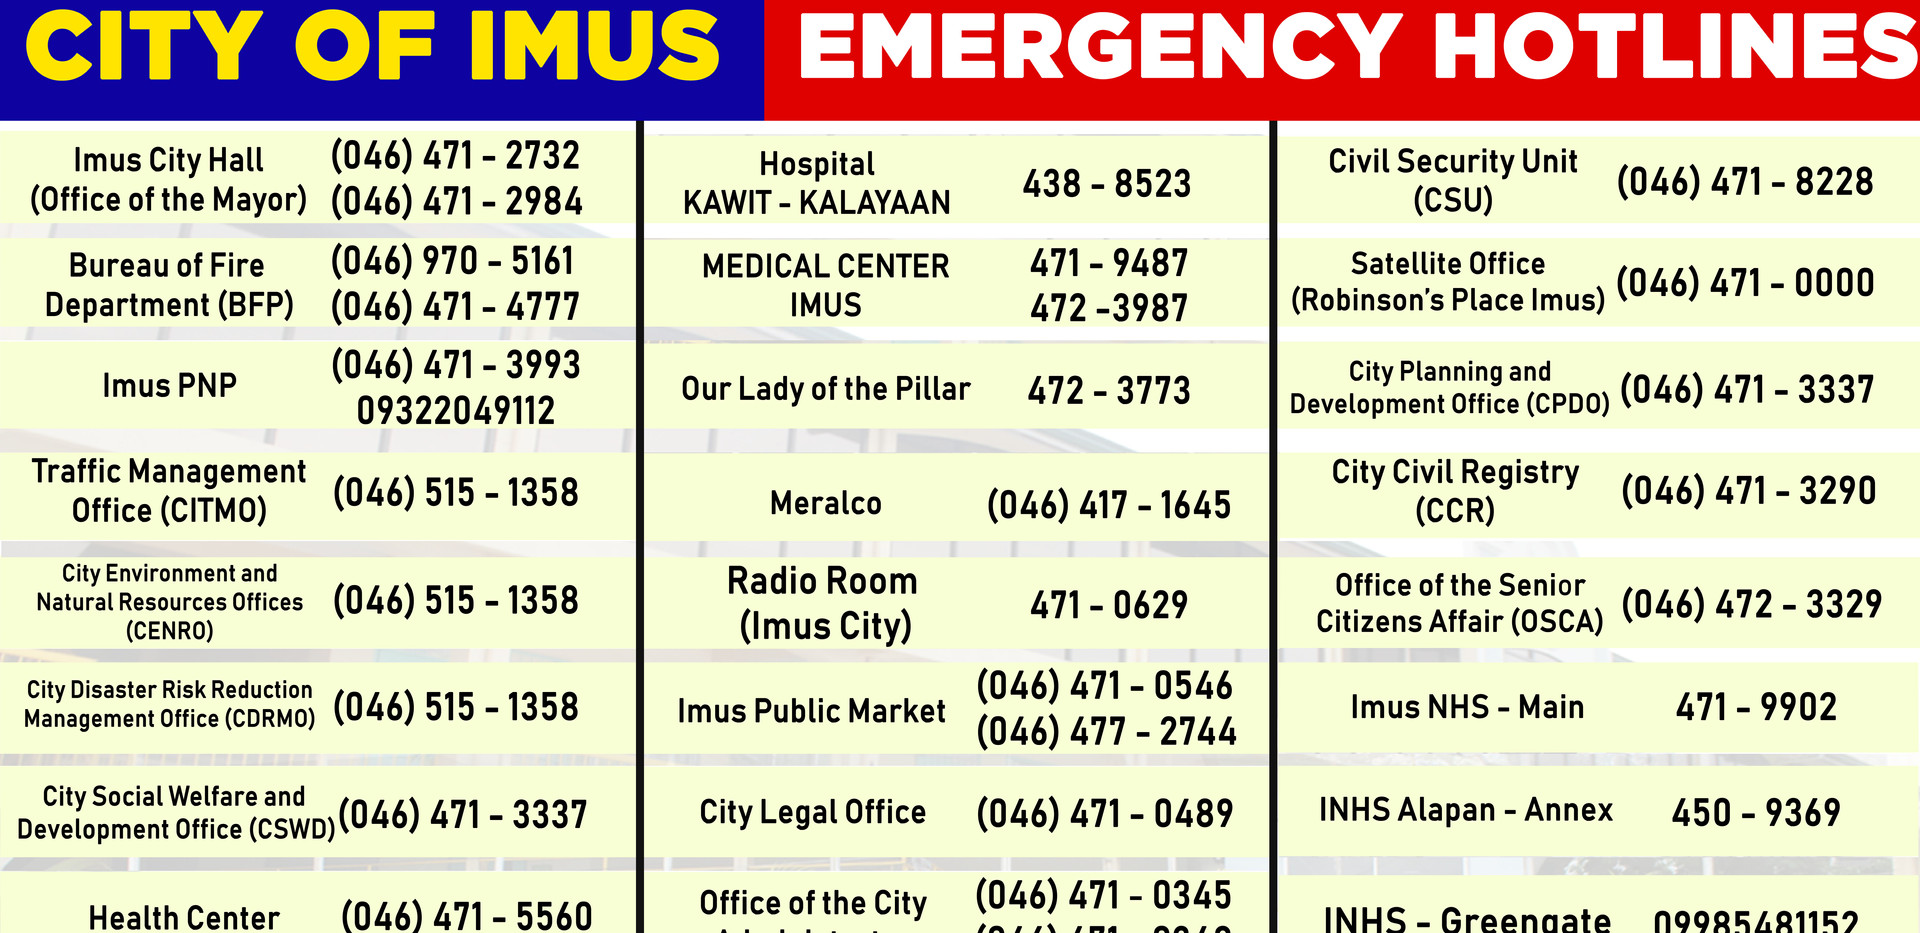 City of Imus Emergecy Hotlines